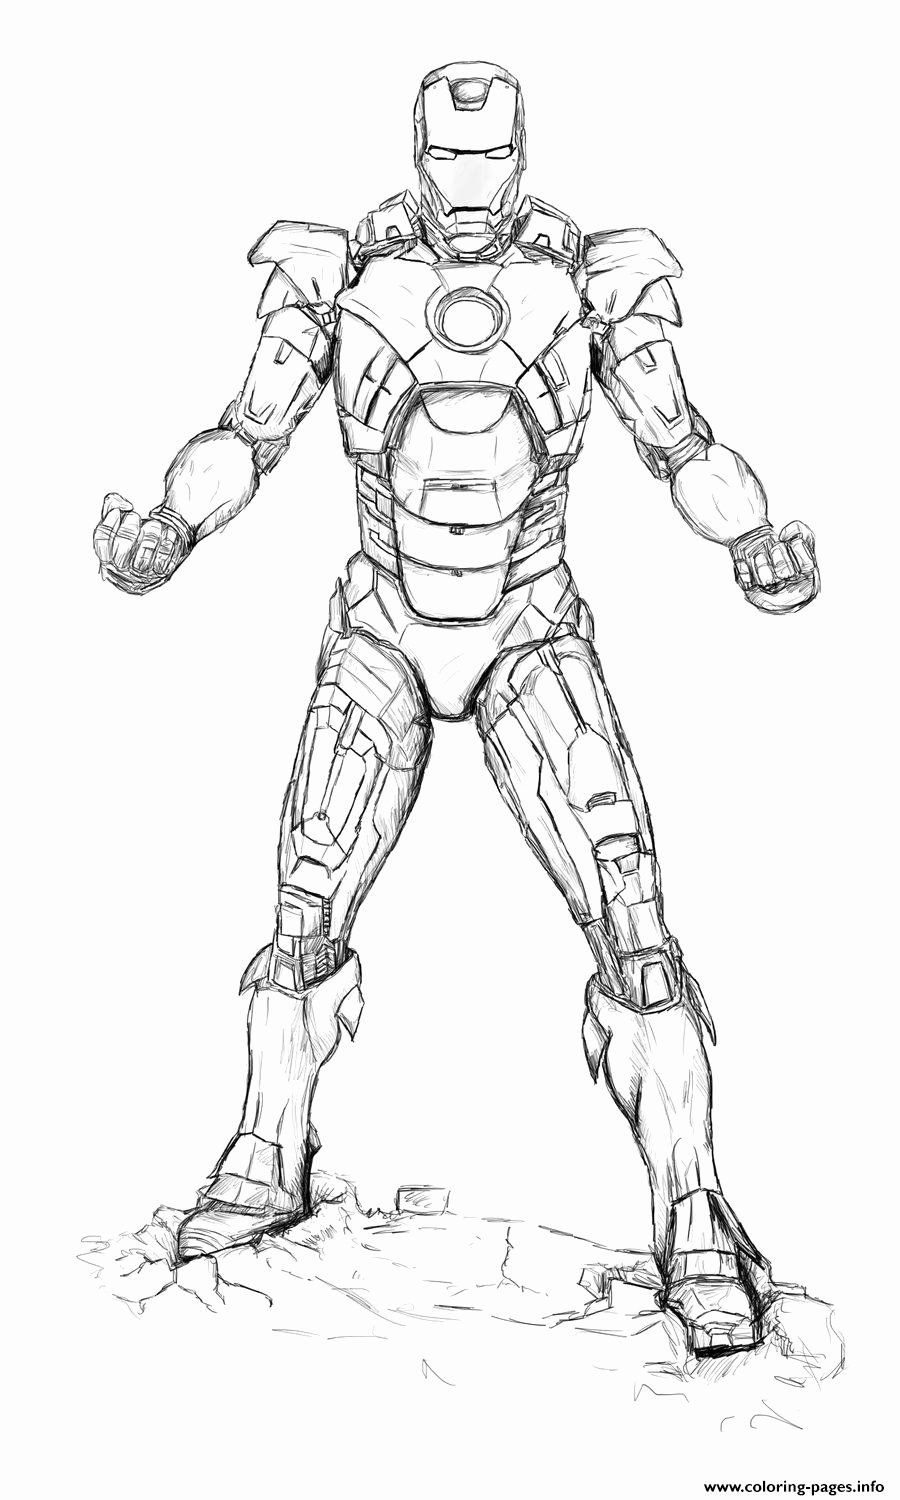 Iron Man Printable Coloring Pages Awesome Iron Man Coloring Sheets To Print131f Coloring Pages Printa Avengers Coloring Avengers Coloring Pages Marvel Coloring